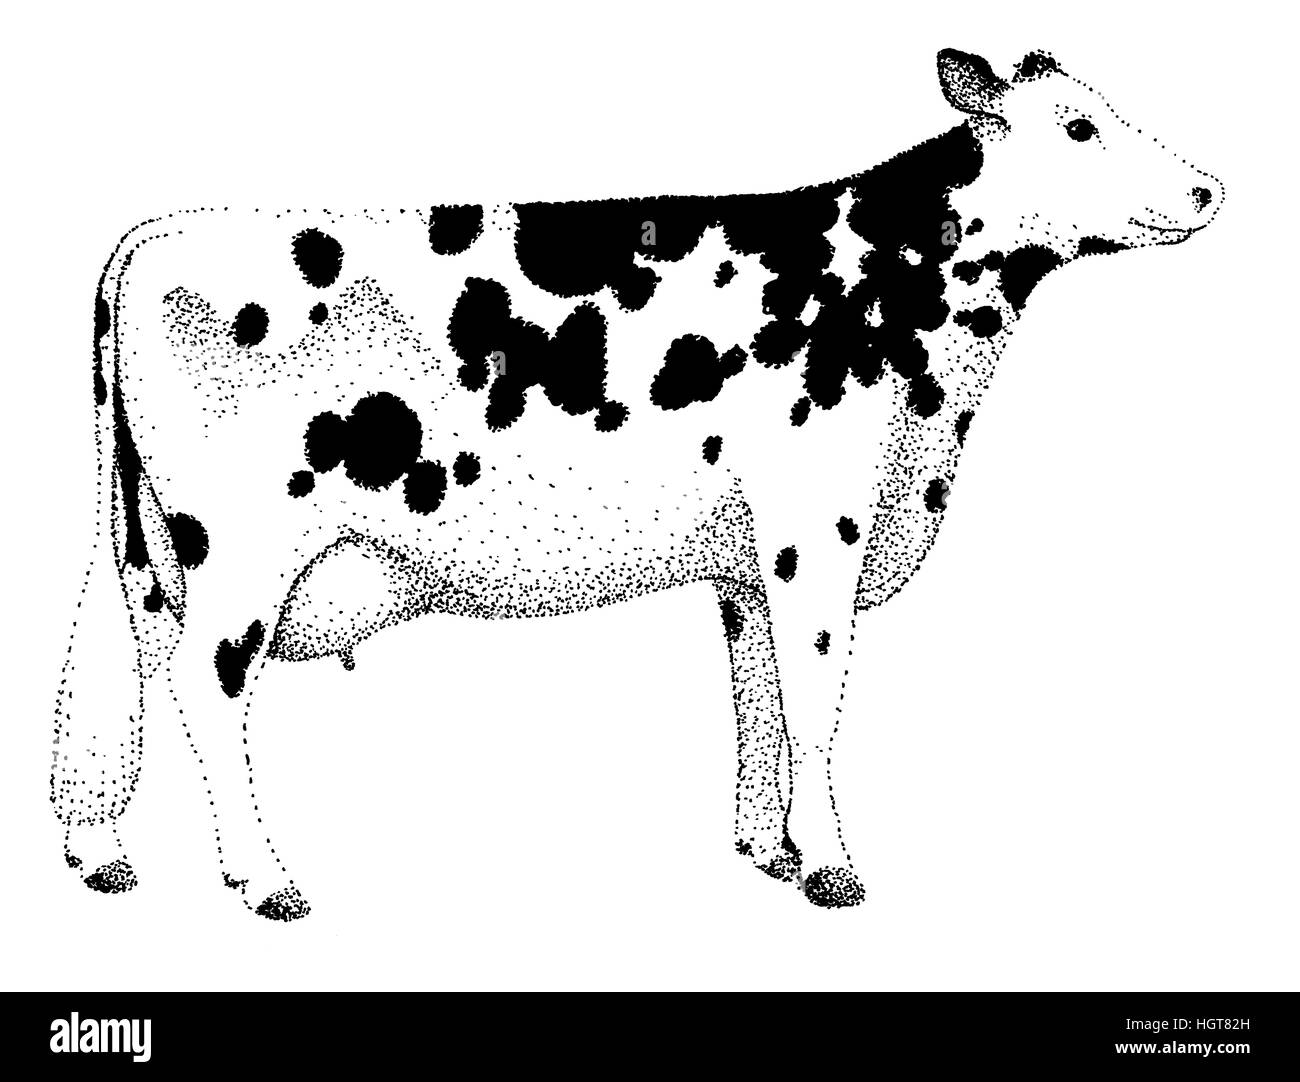 Cow illustration old lithography style hand drawn - Stock Image